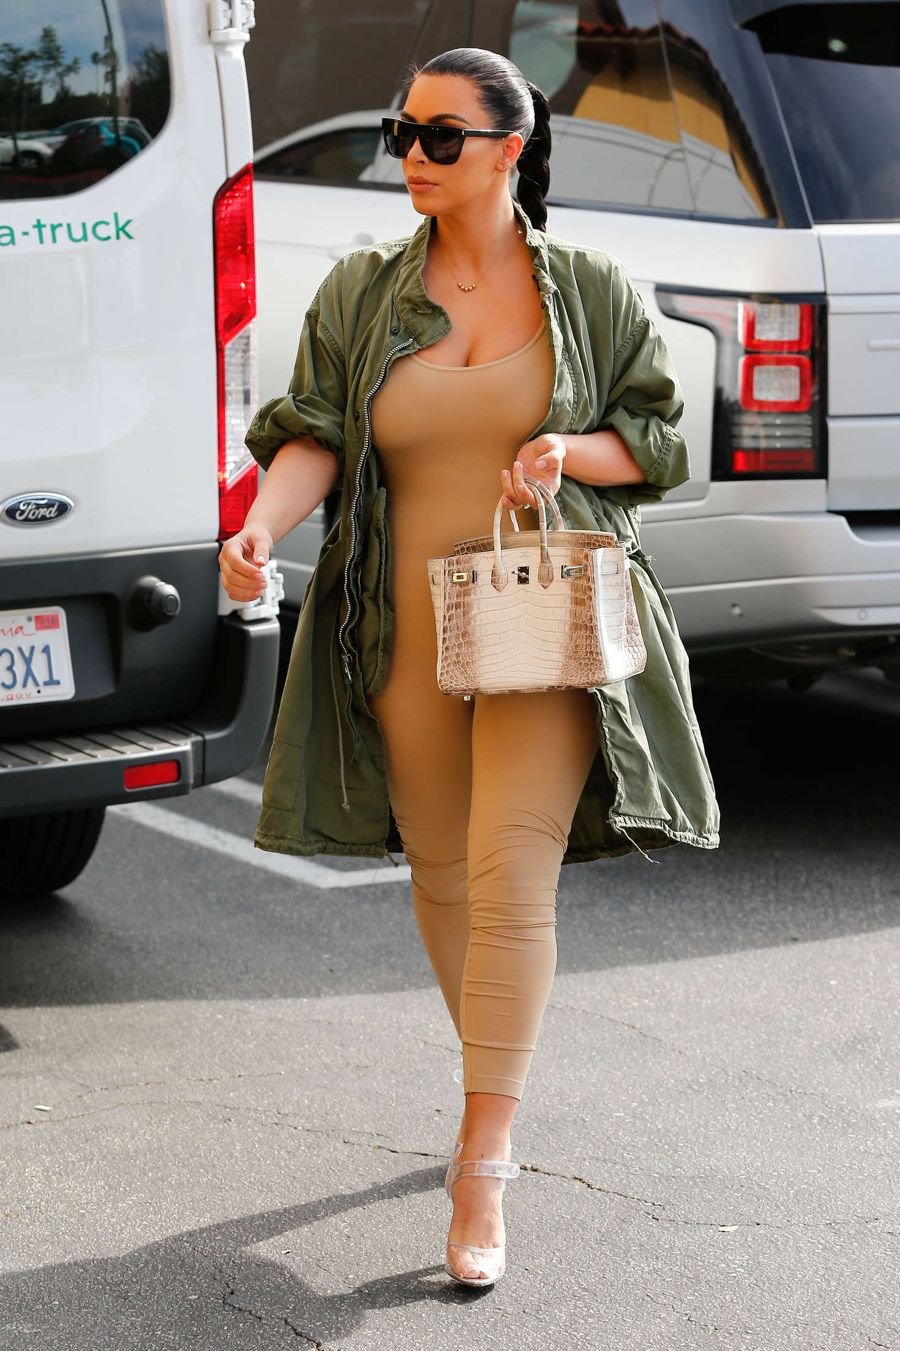 Kim Kardashian shows Post Baby Figure in Body Suit